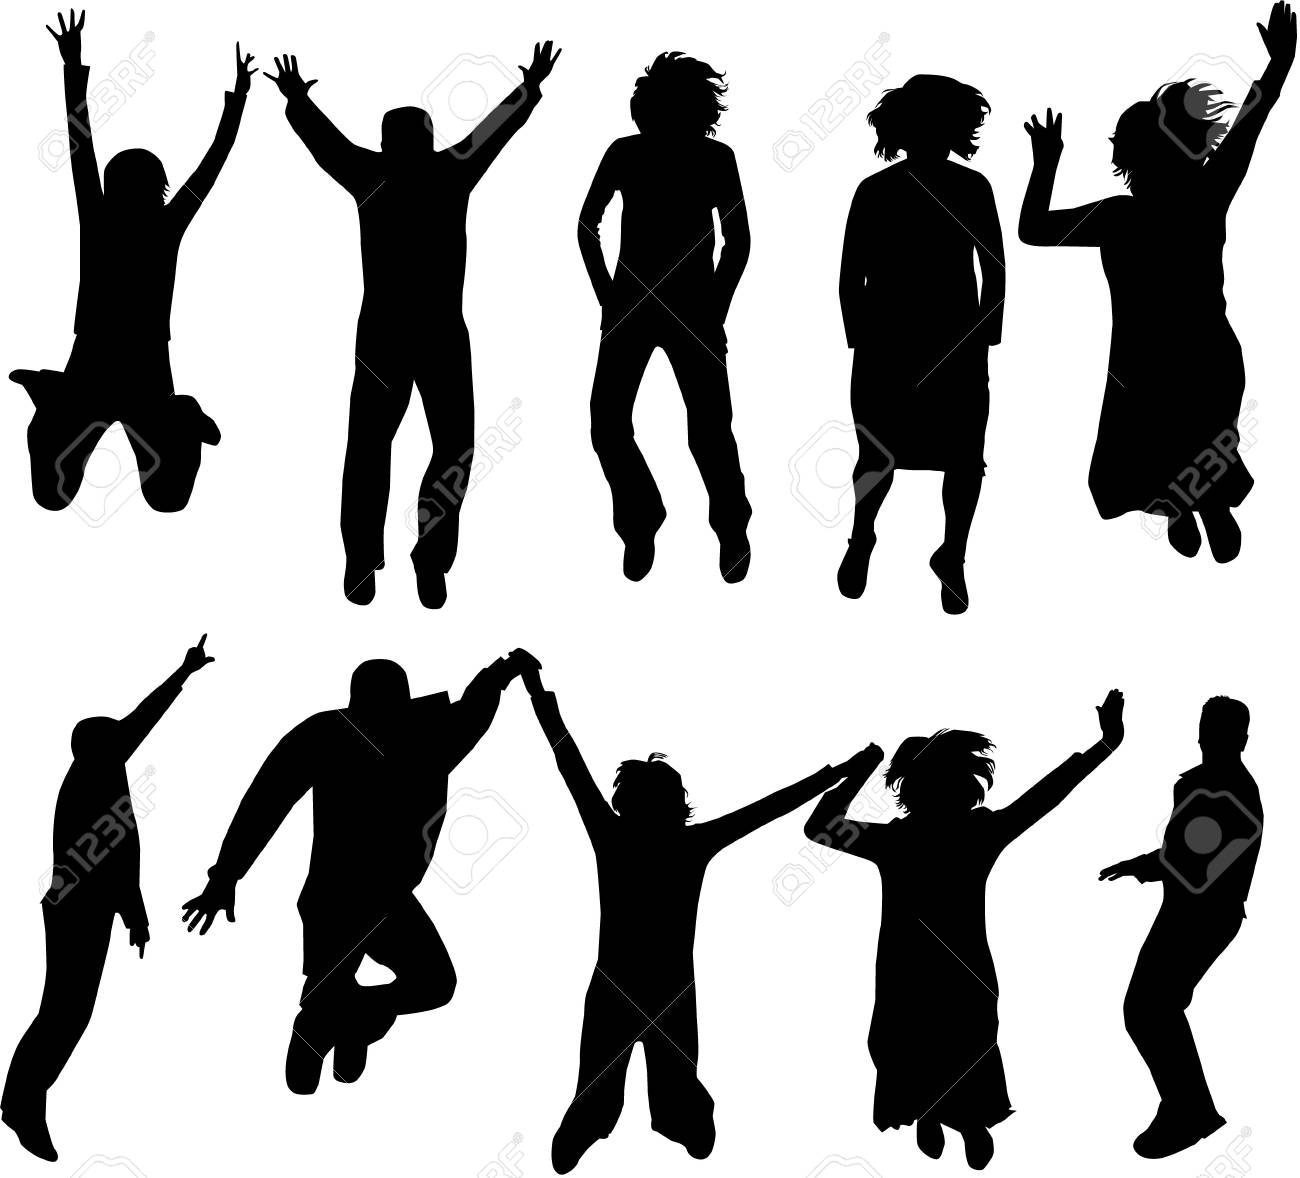 Jumping Silhouettes Stock Vector - 10423244